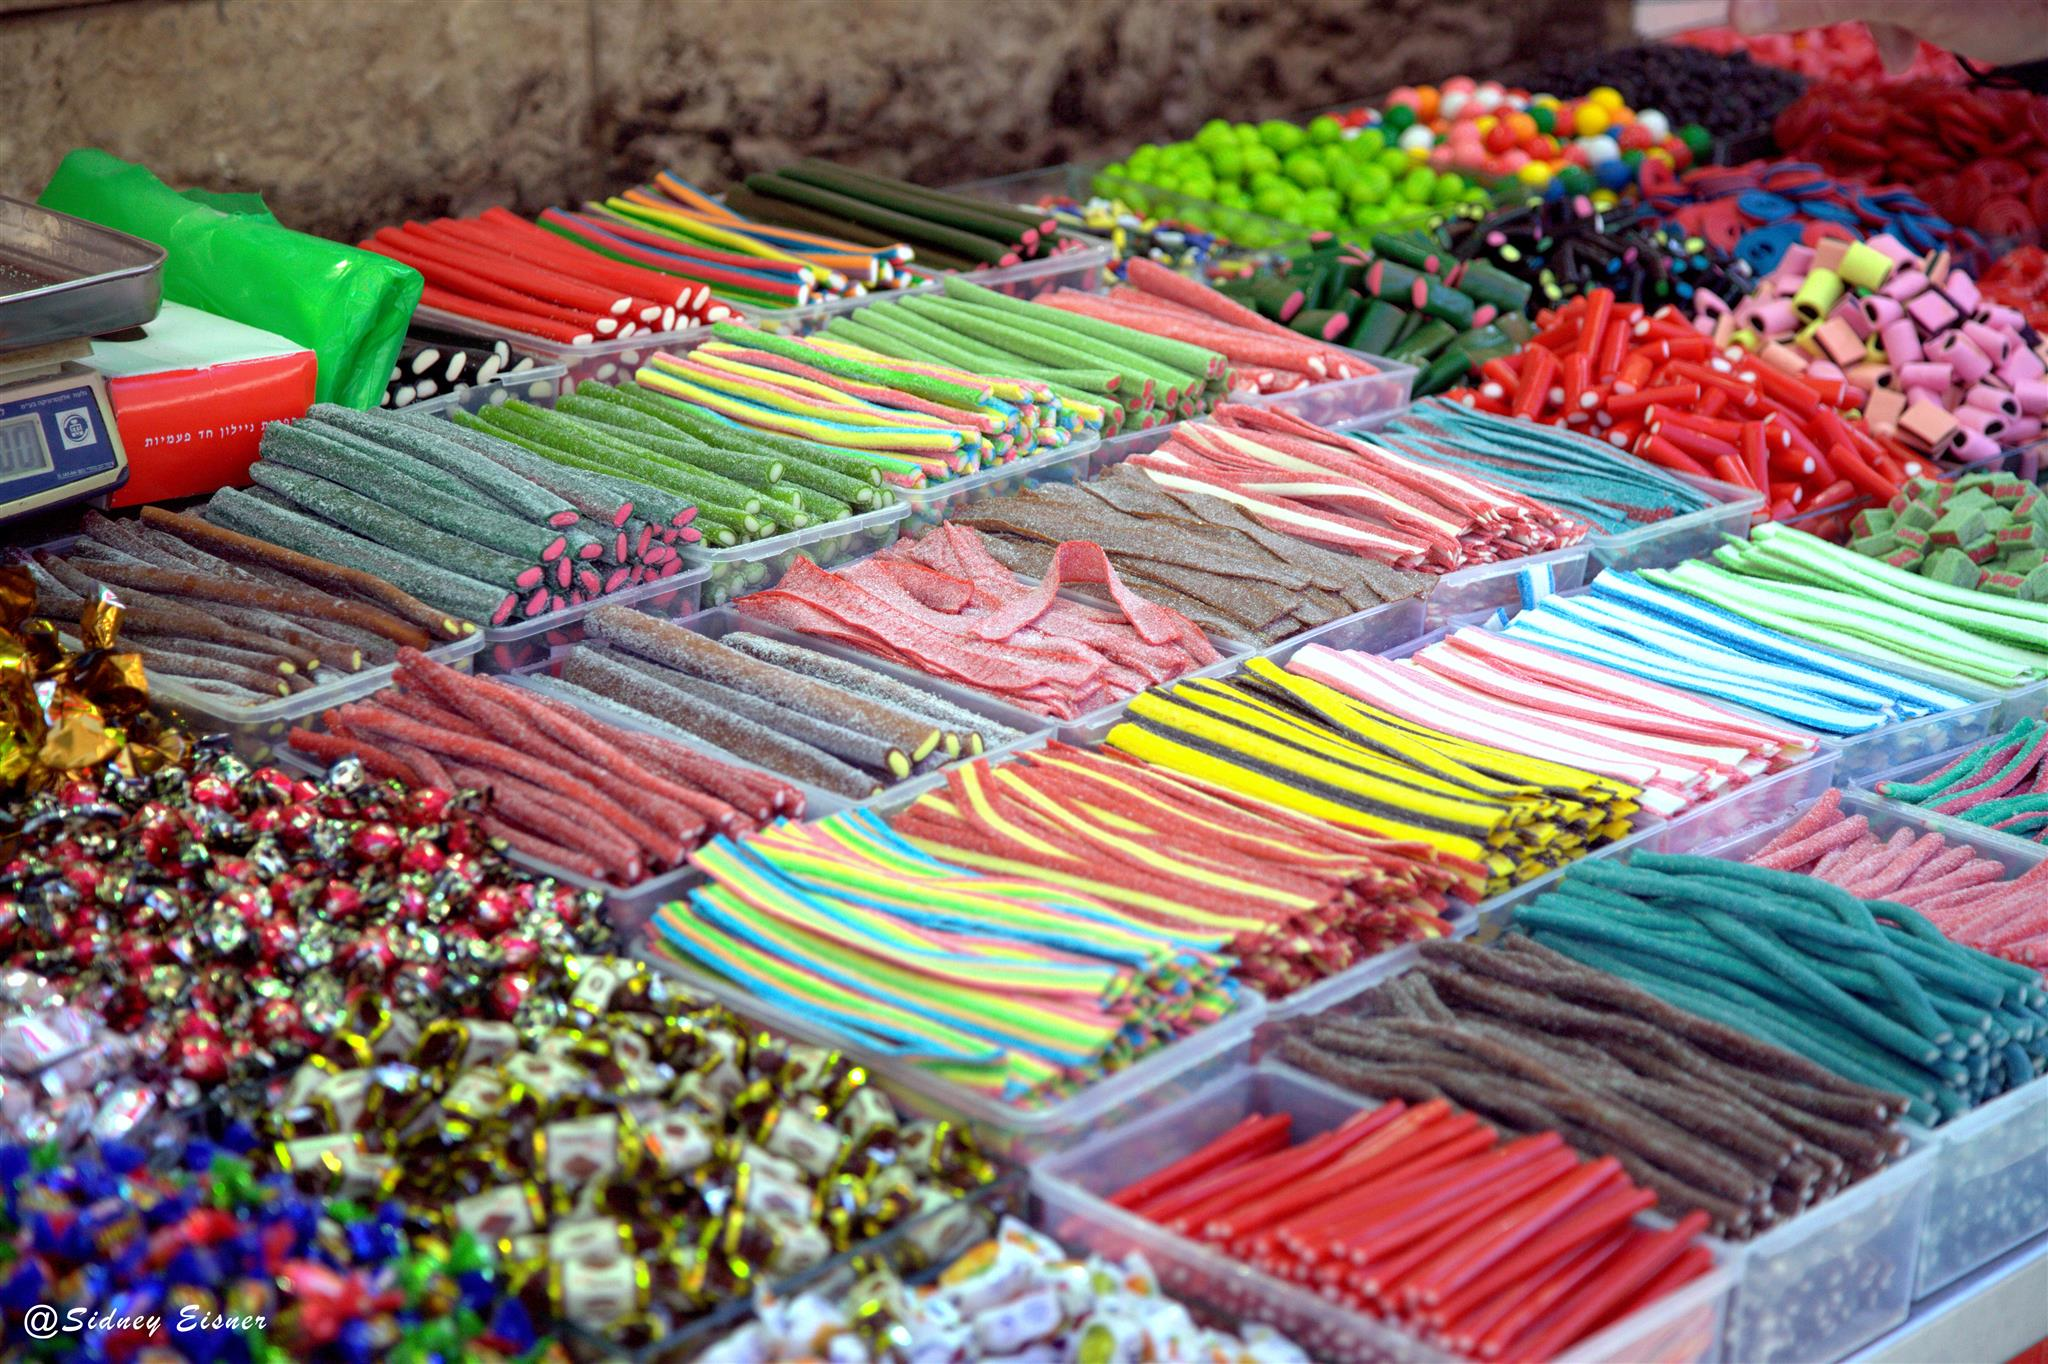 Shuk Machane Yehuda candies